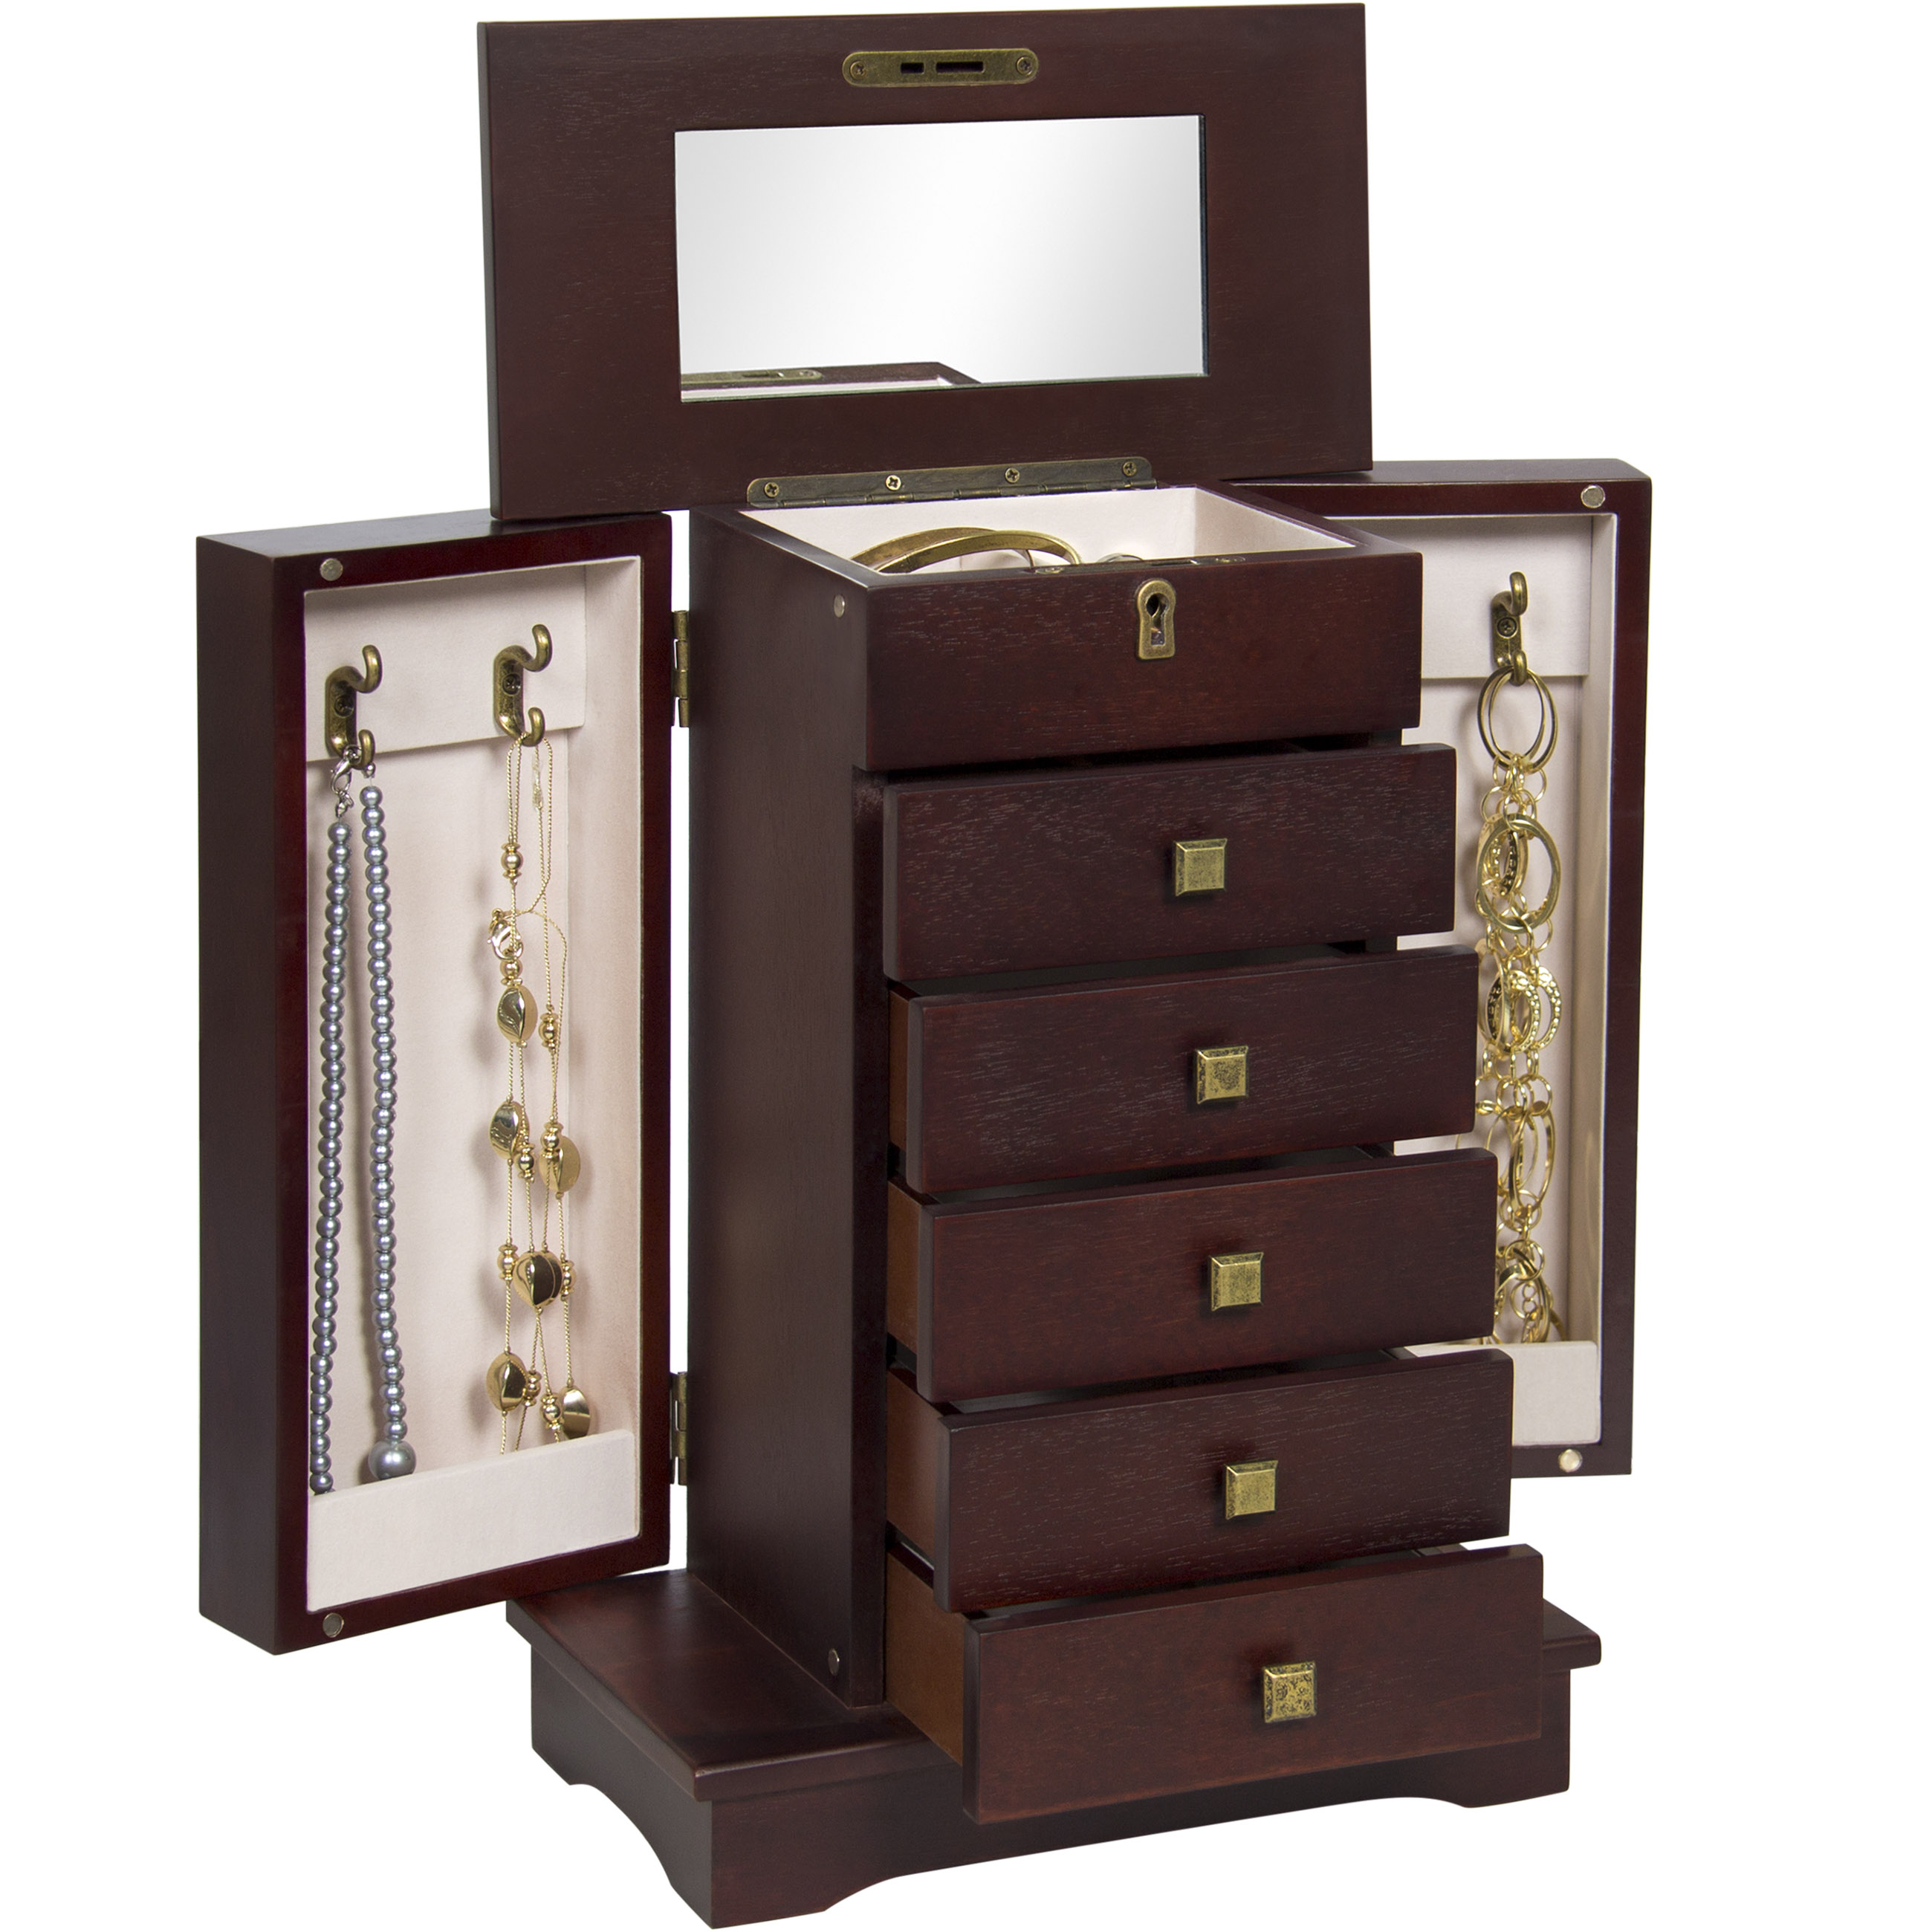 best choice products handcrafted wooden jewelry box organizer wood armoire cabinet